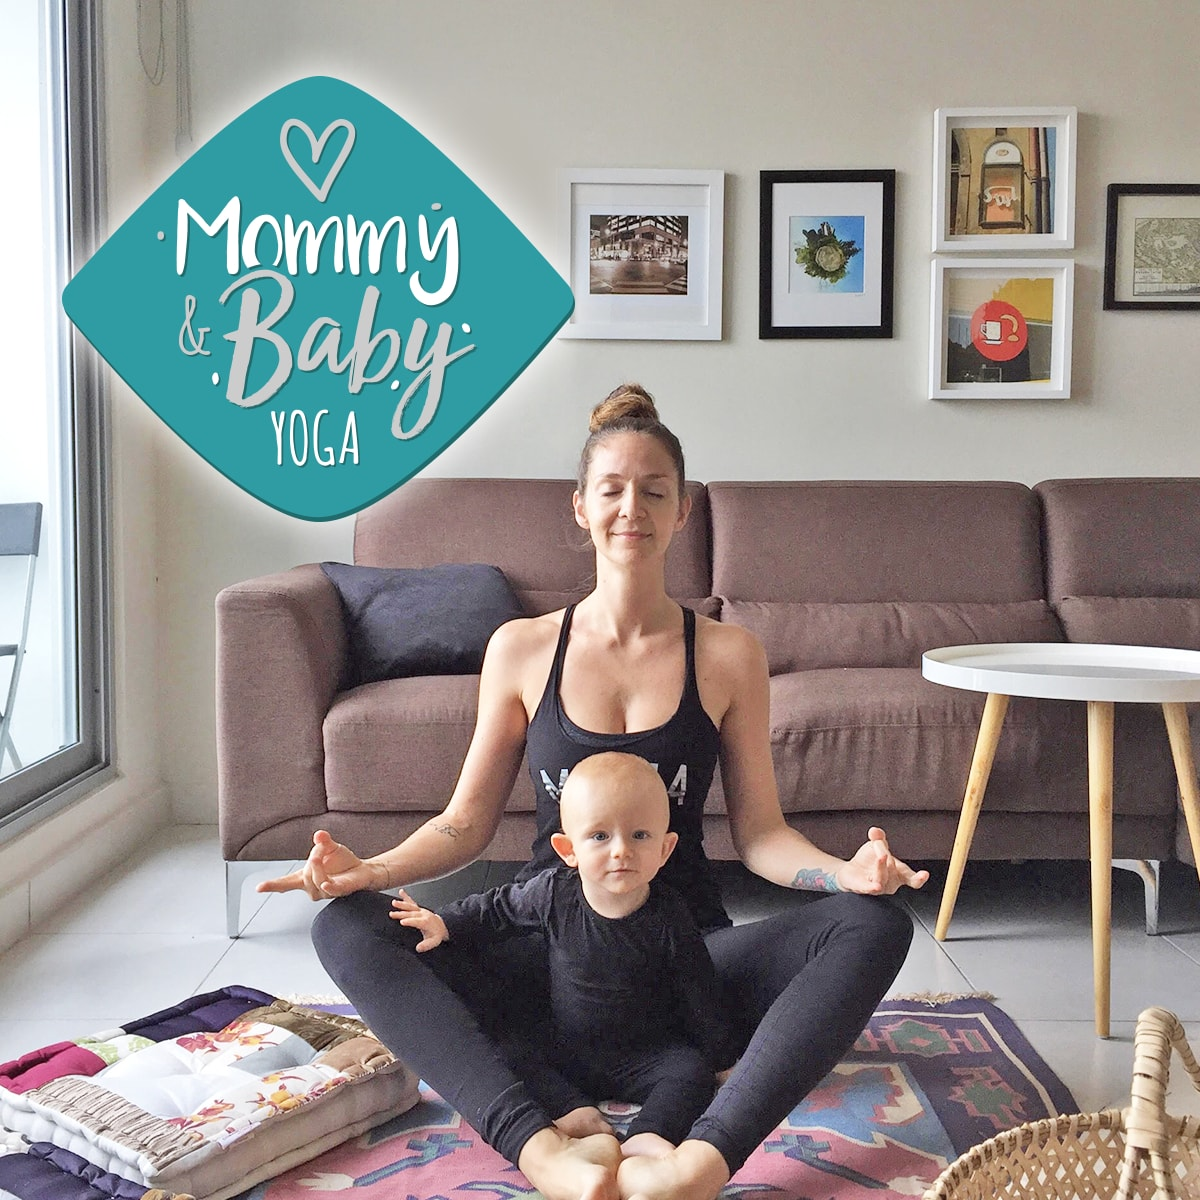 Mommy & Baby Yoga at Casco Yoga Panama with Lauren Spicer. Casco Viejo, Panama City Panama